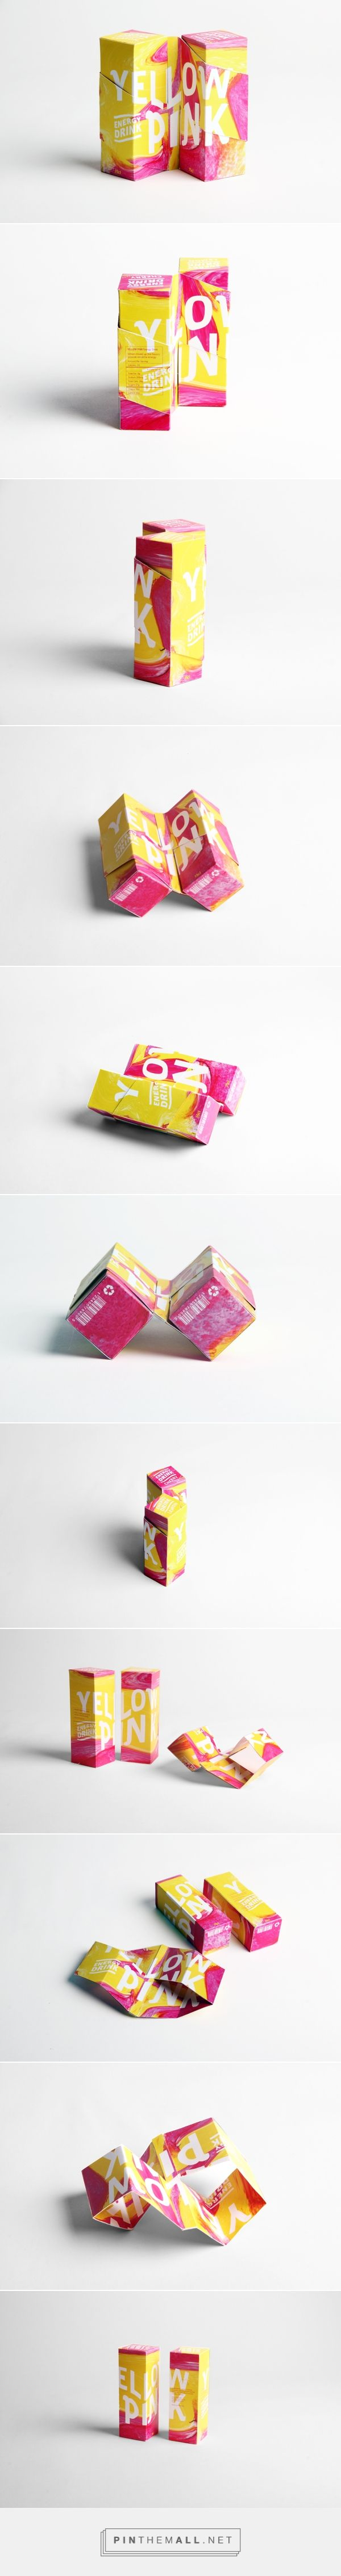 YELLOW PINK /  YELLOW PINK Energy Drink Composed by two different juice flavors in order to be mixed.